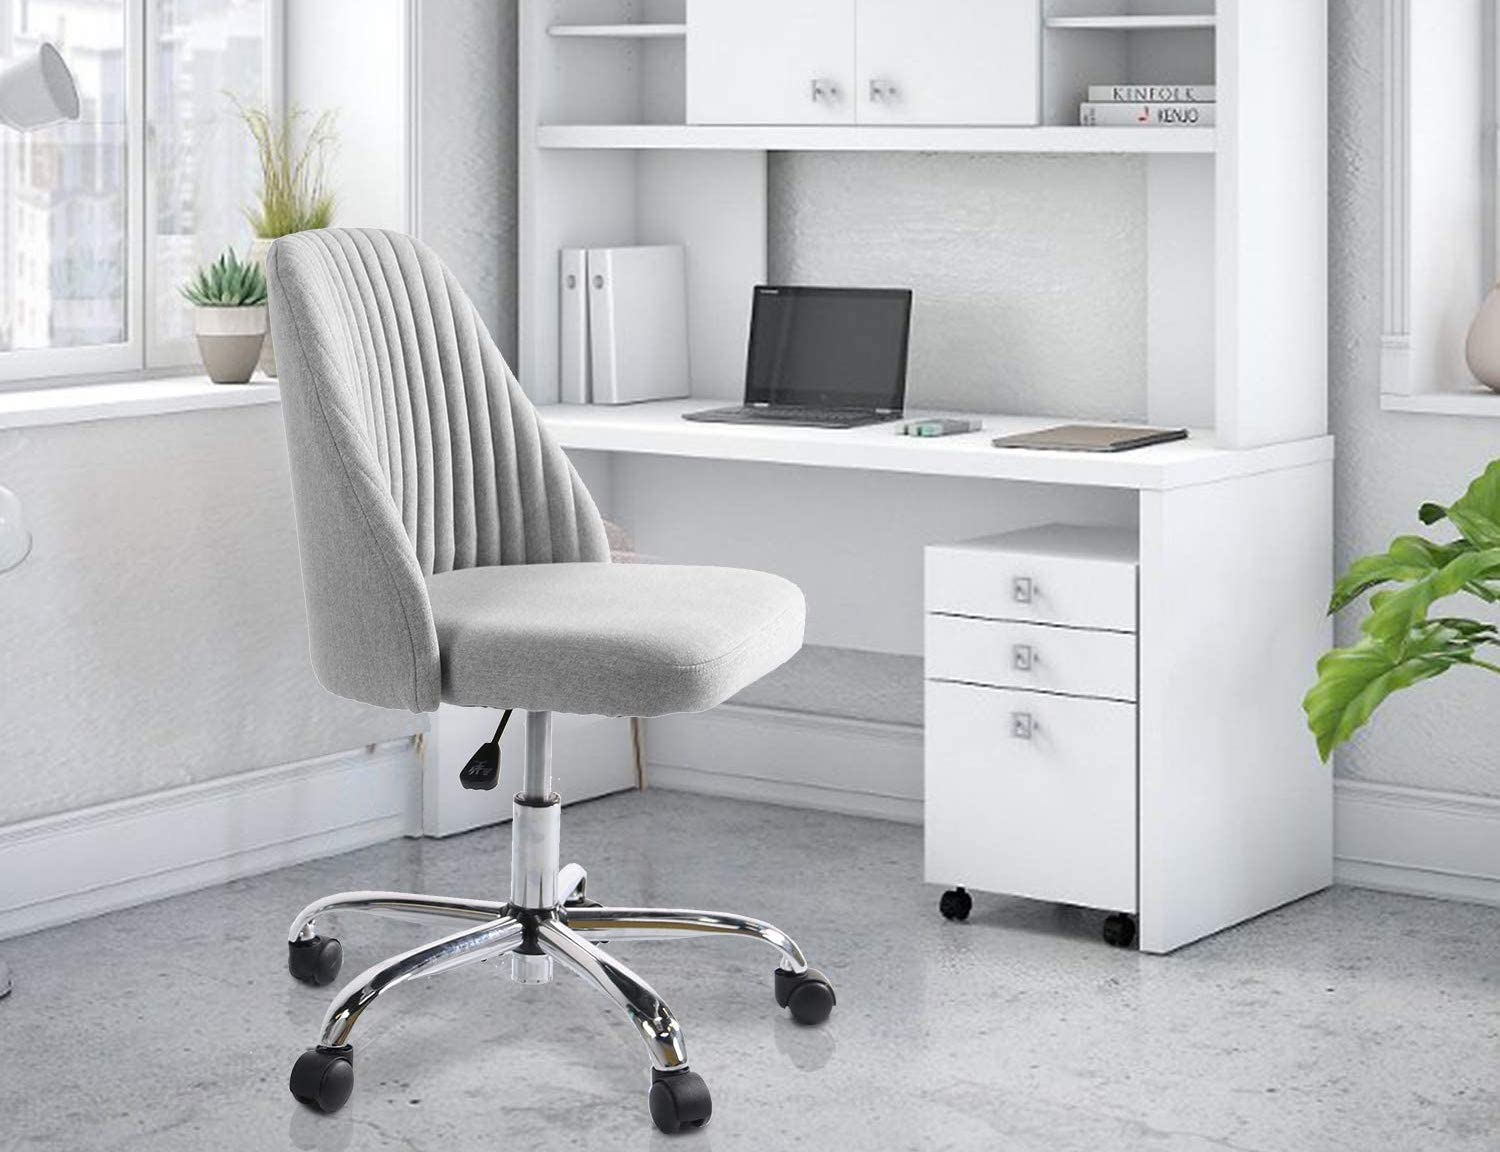 The Rimiking Twill Fabric Chair in Gray in an all-white home office.